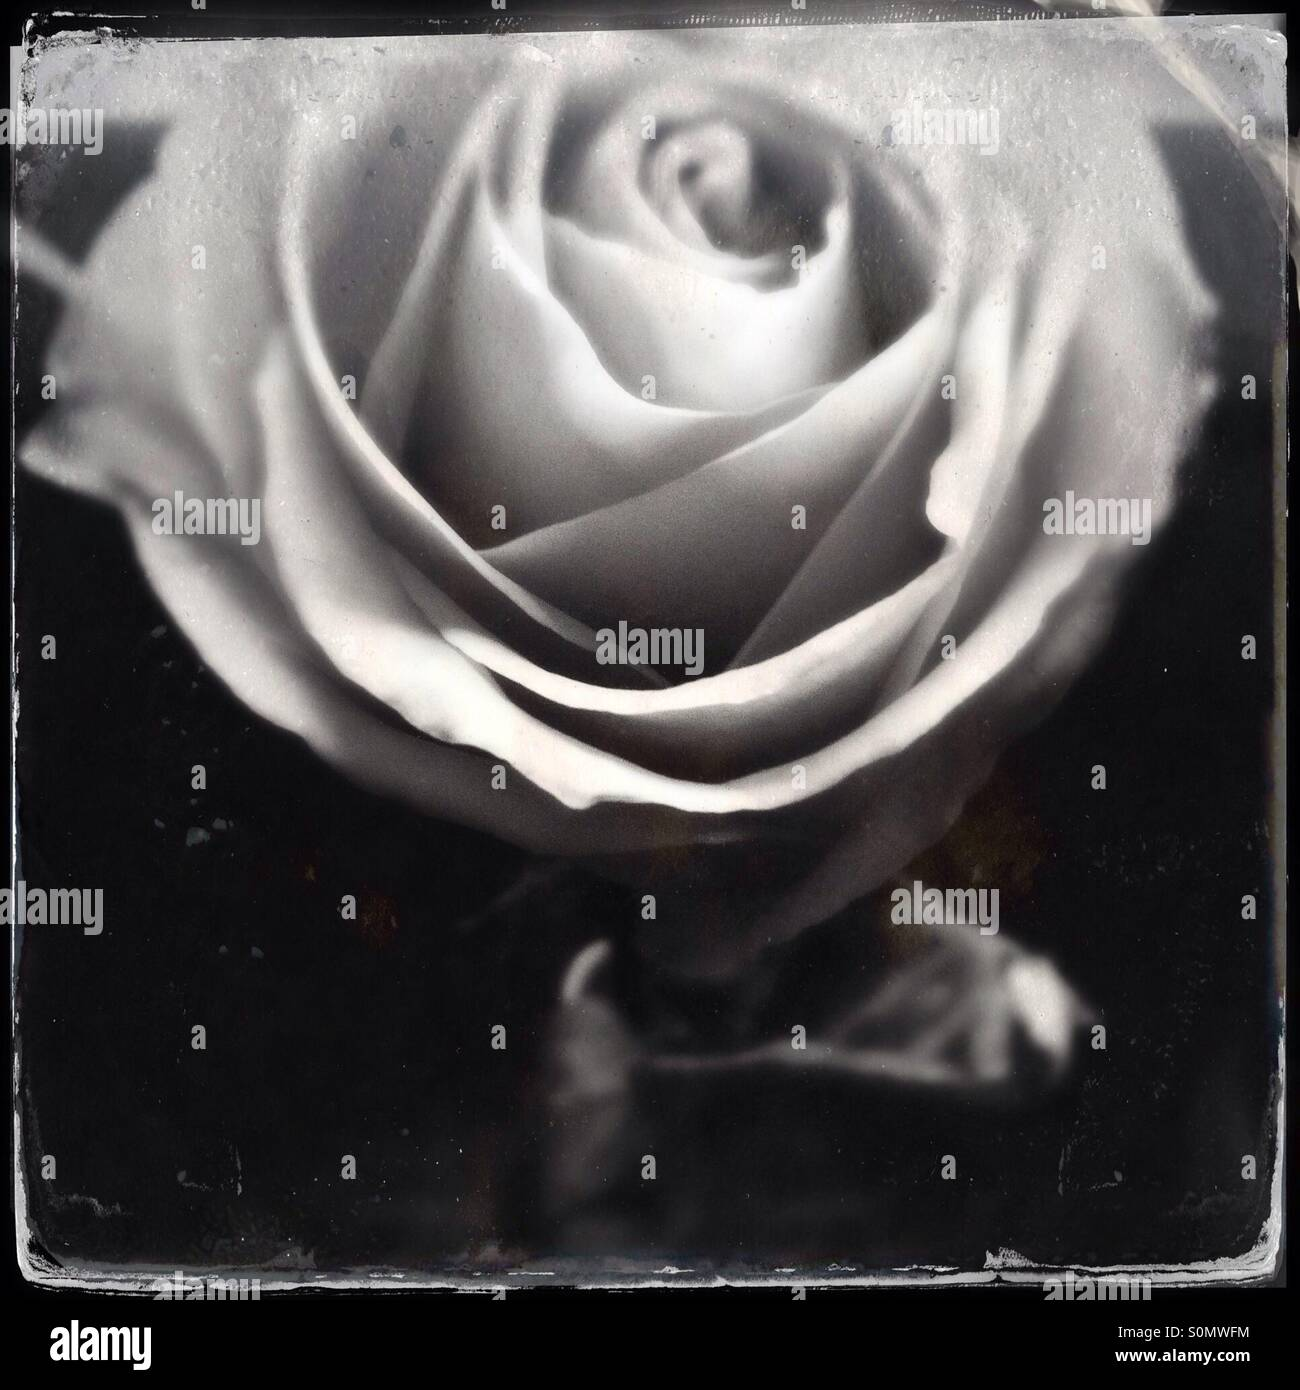 Vintage wet plate like black and white photo of a single rose, shot close up from above - Stock Image